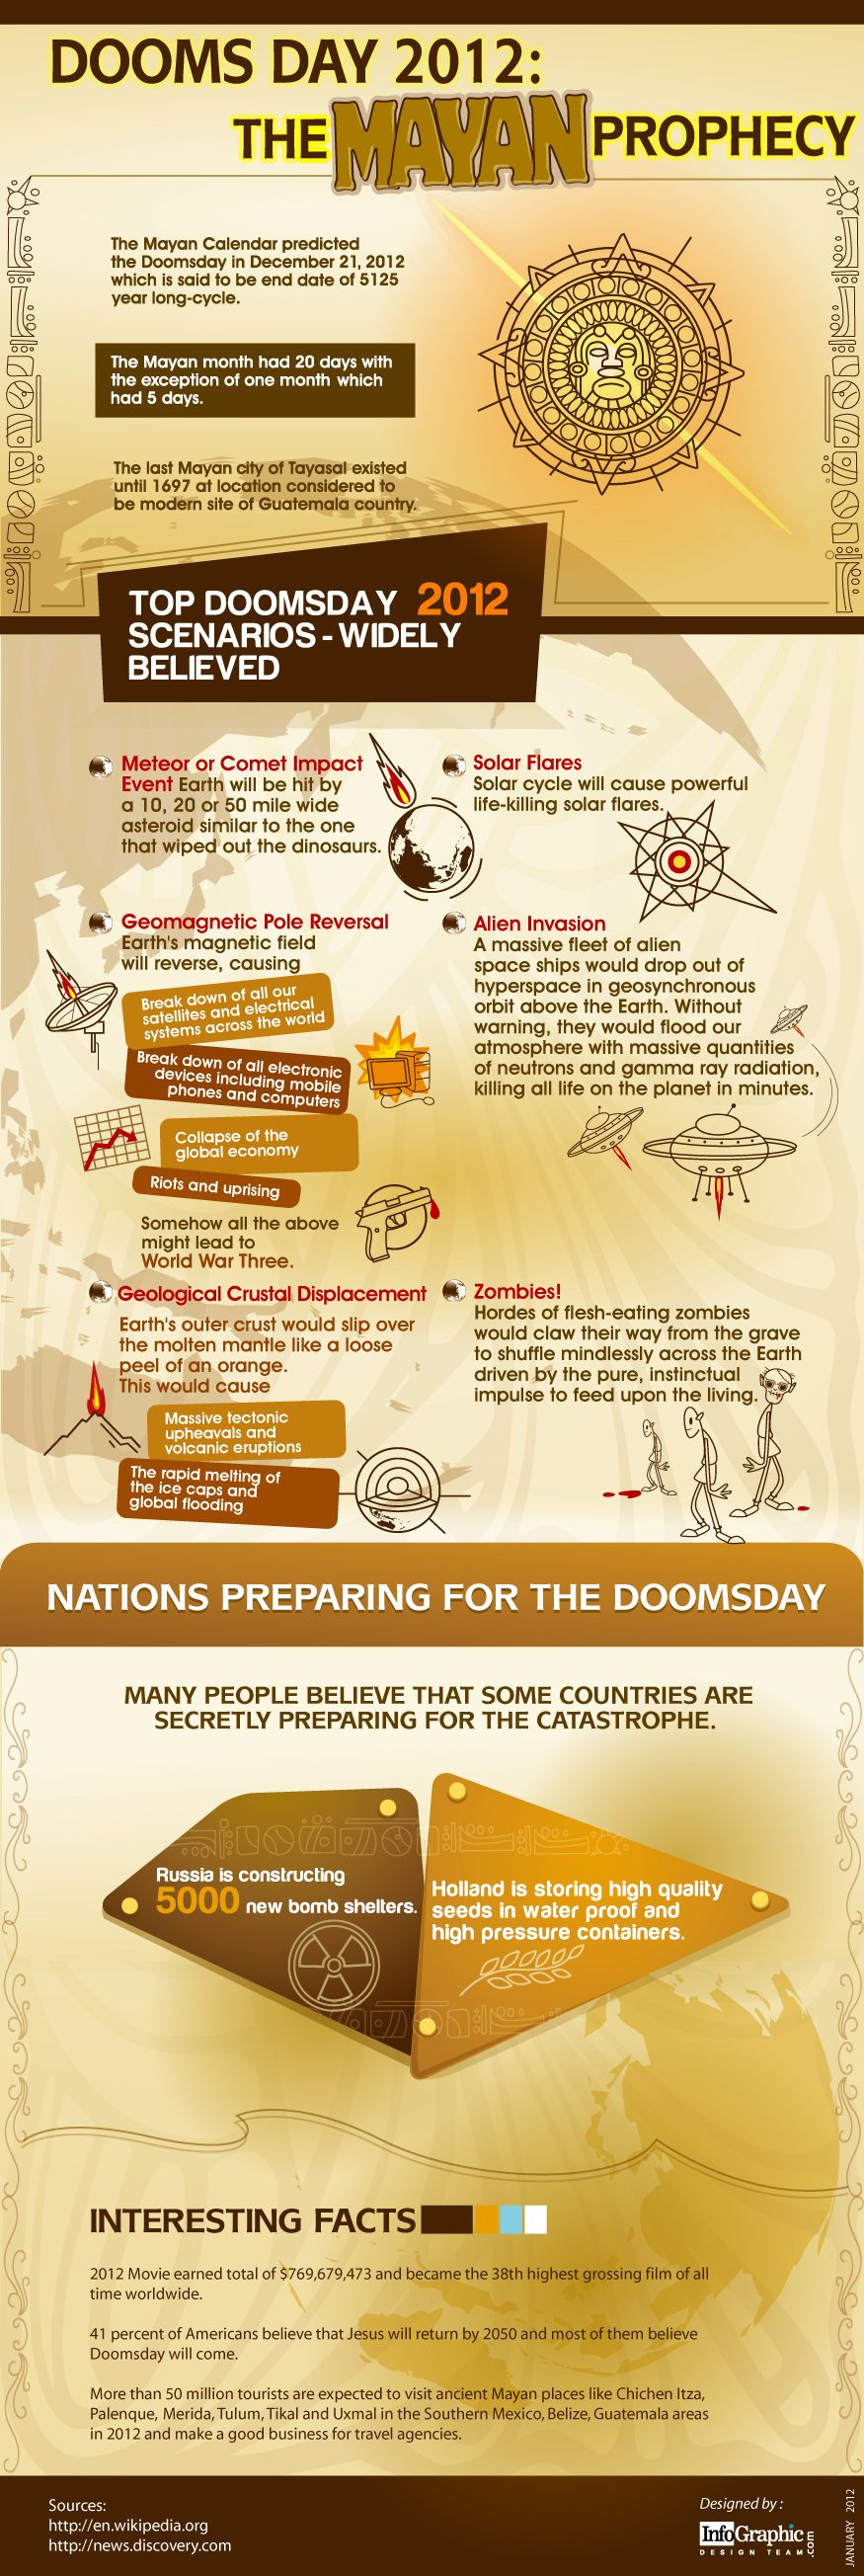 Don't you believe that doomsday is knocking at the door? Check out what others believe about December 21, 2012 being the end of the world.